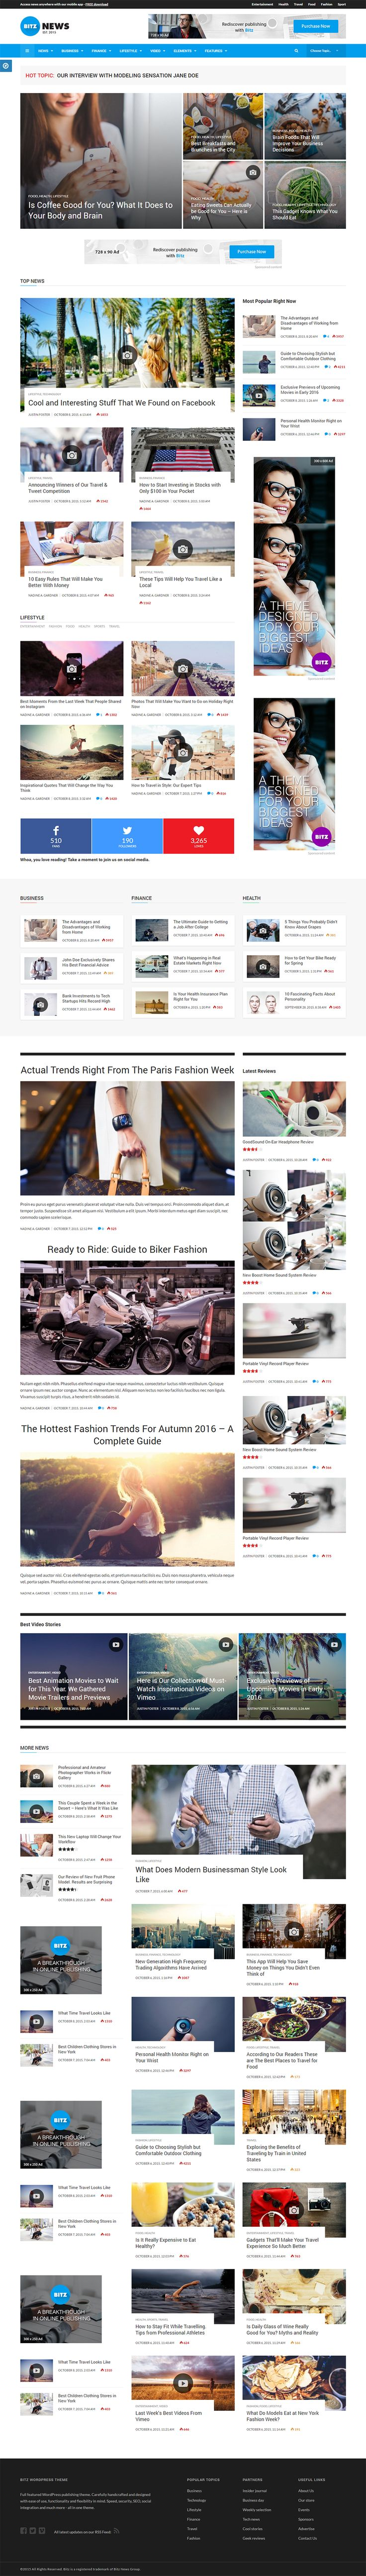 Bitz - News & Publishing Theme Bitz Publishing WordPress theme is best way to build online news or magazines websites. You can use this Bitz theme to increase your site's performance as well as readers.